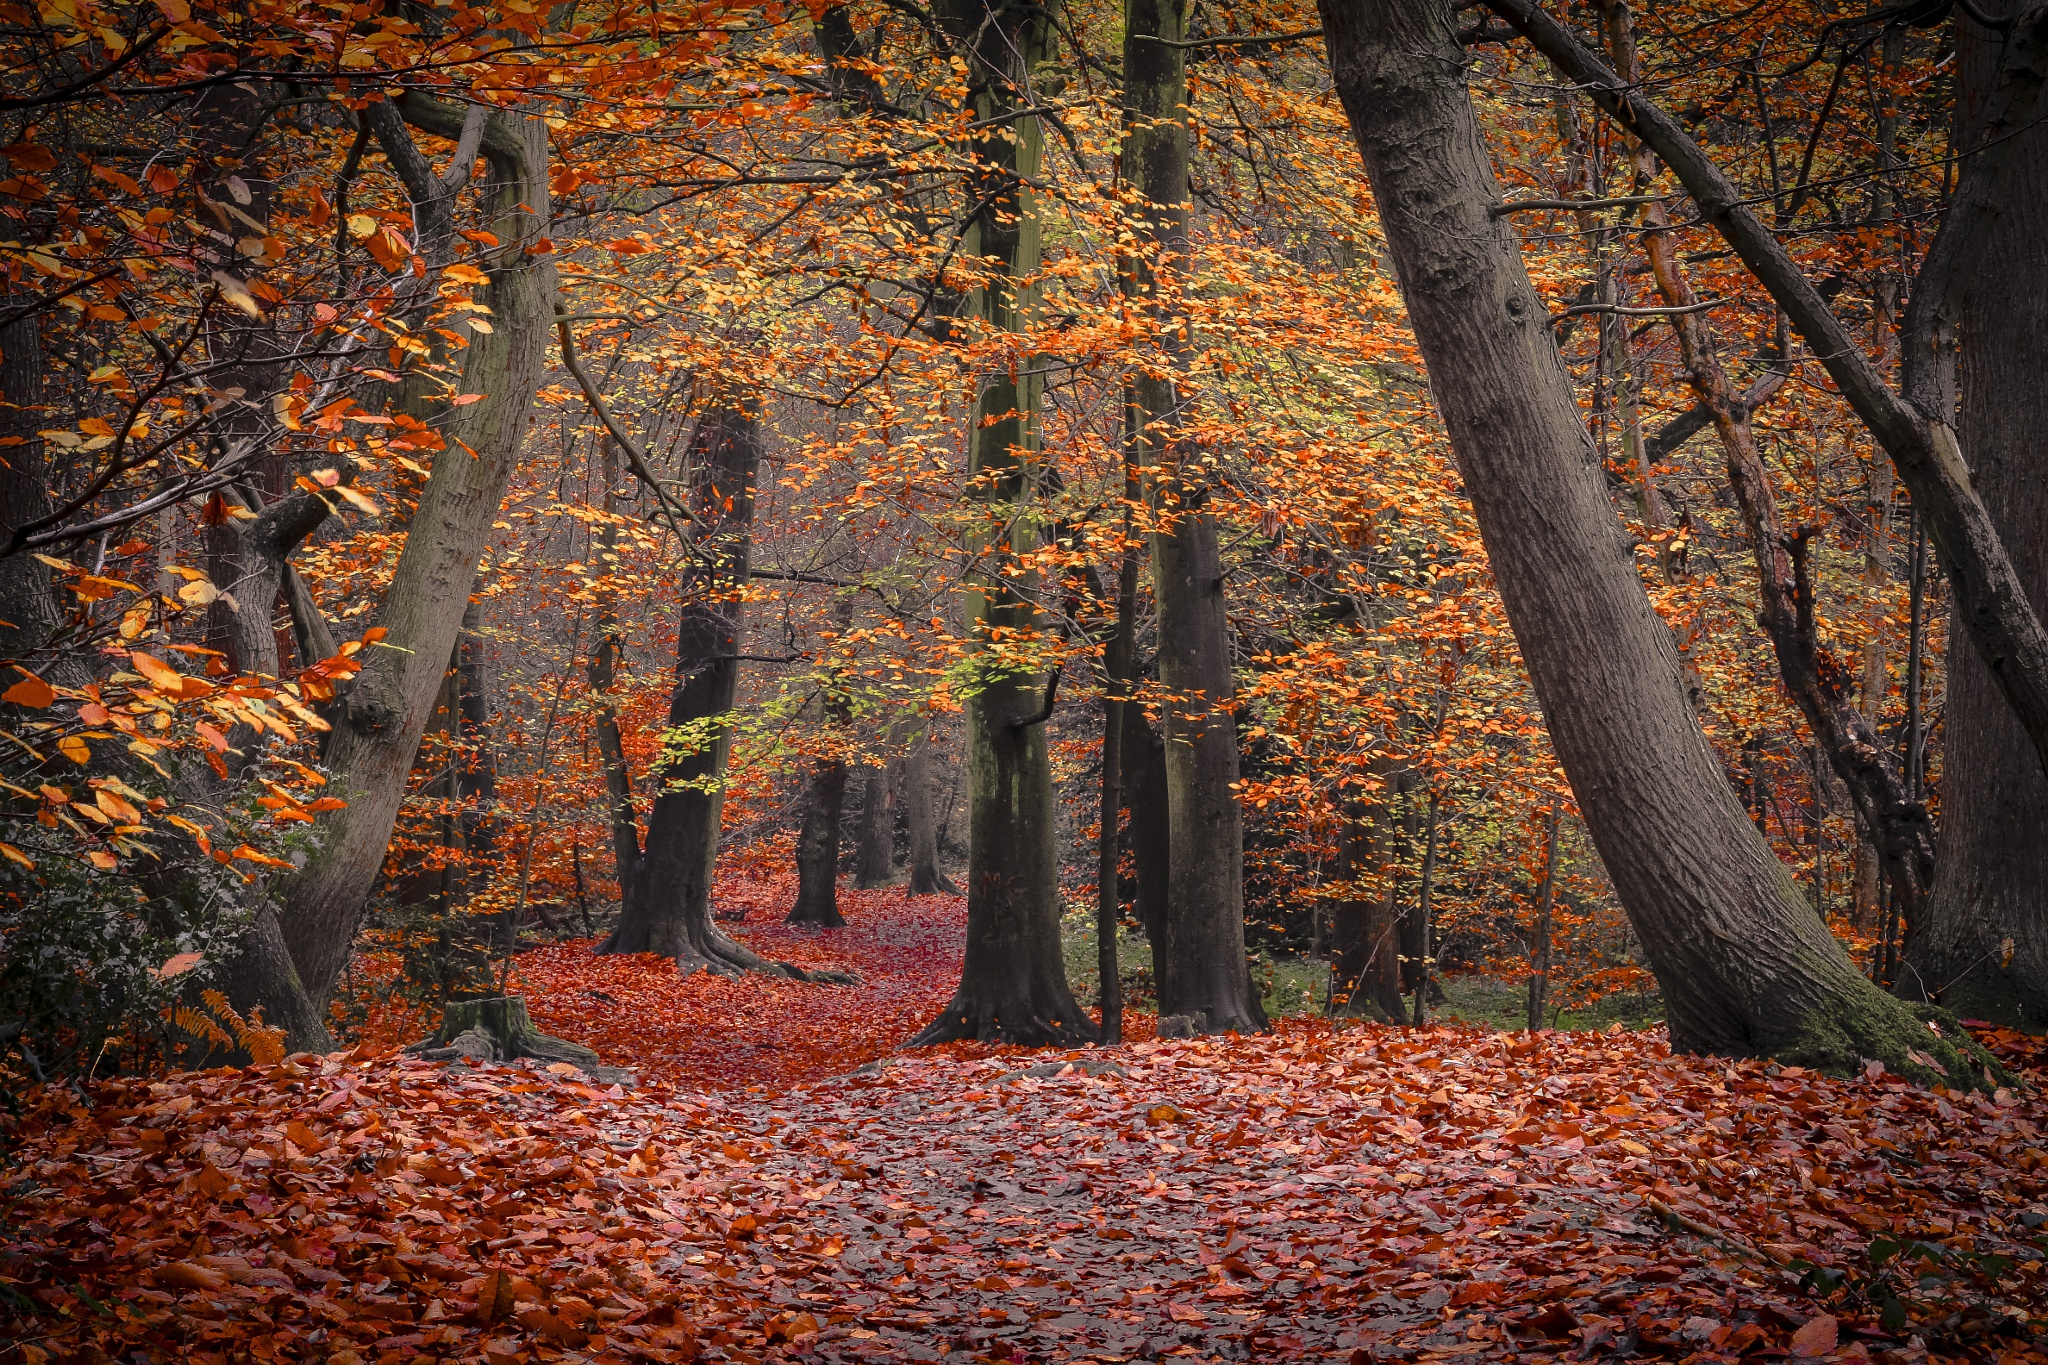 The Enchanted Forest. by Frederick74